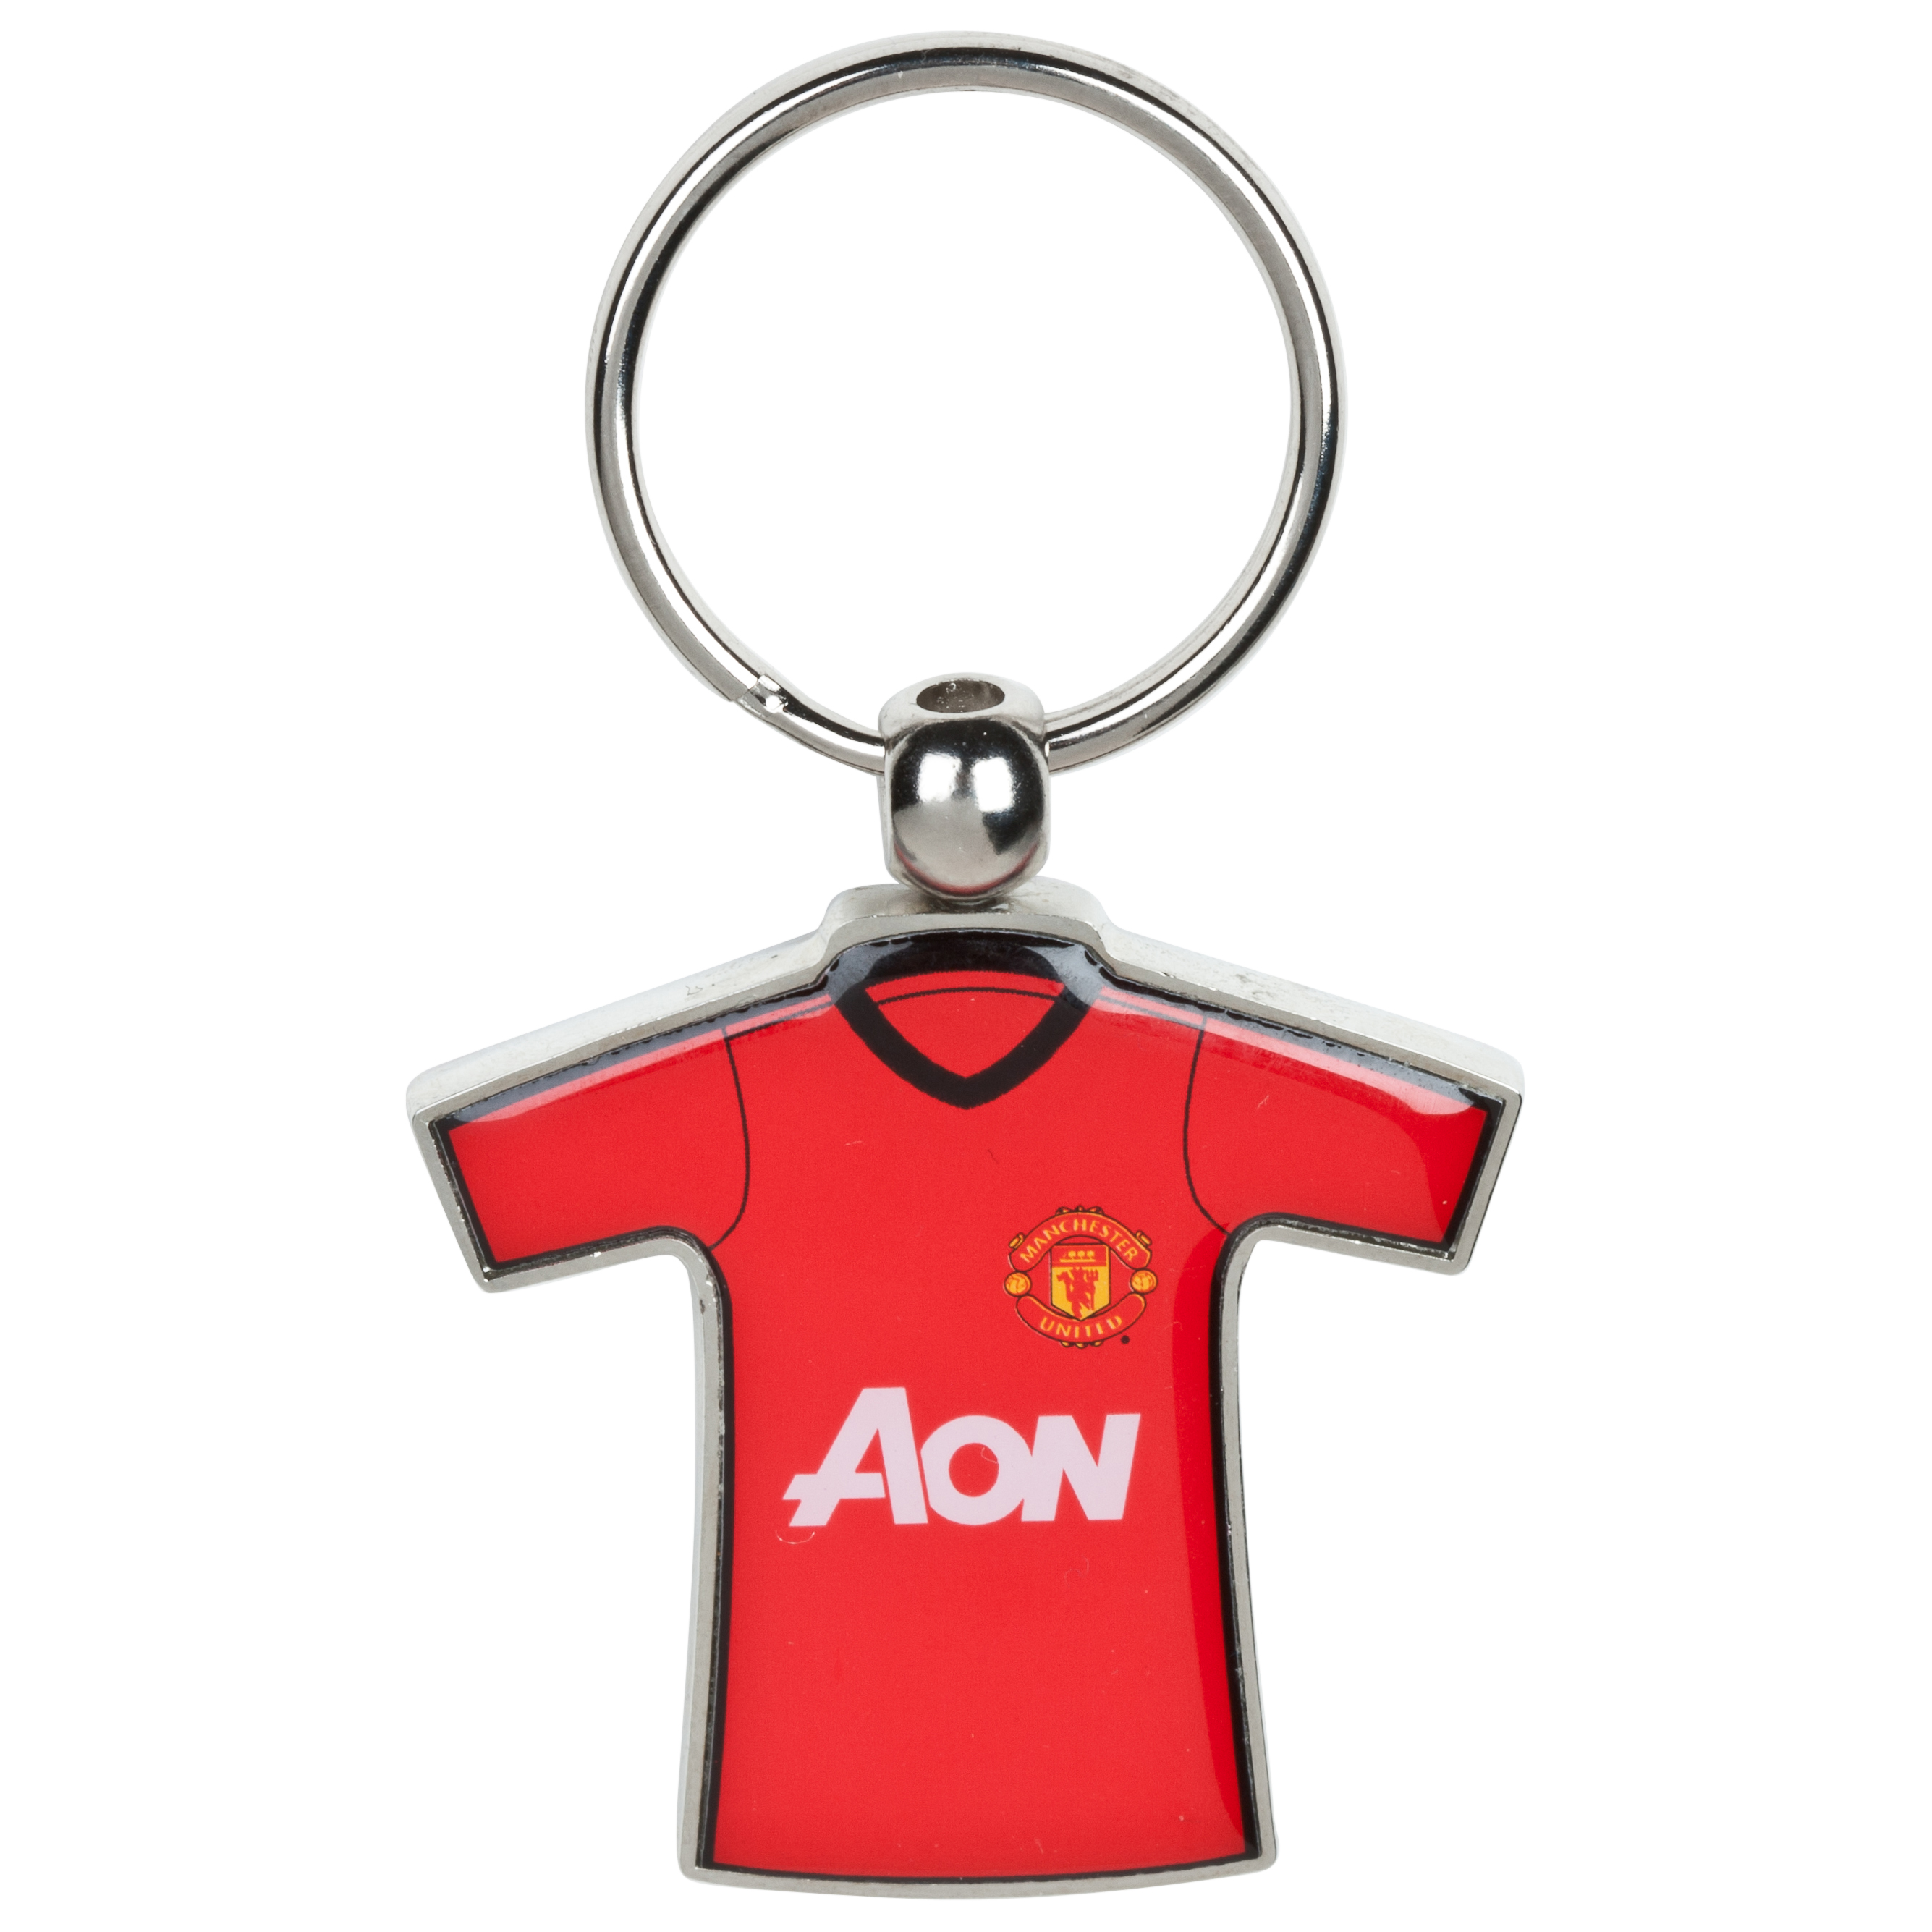 Manchester United 2012/13 Home/Away Kit Keyring - Metal